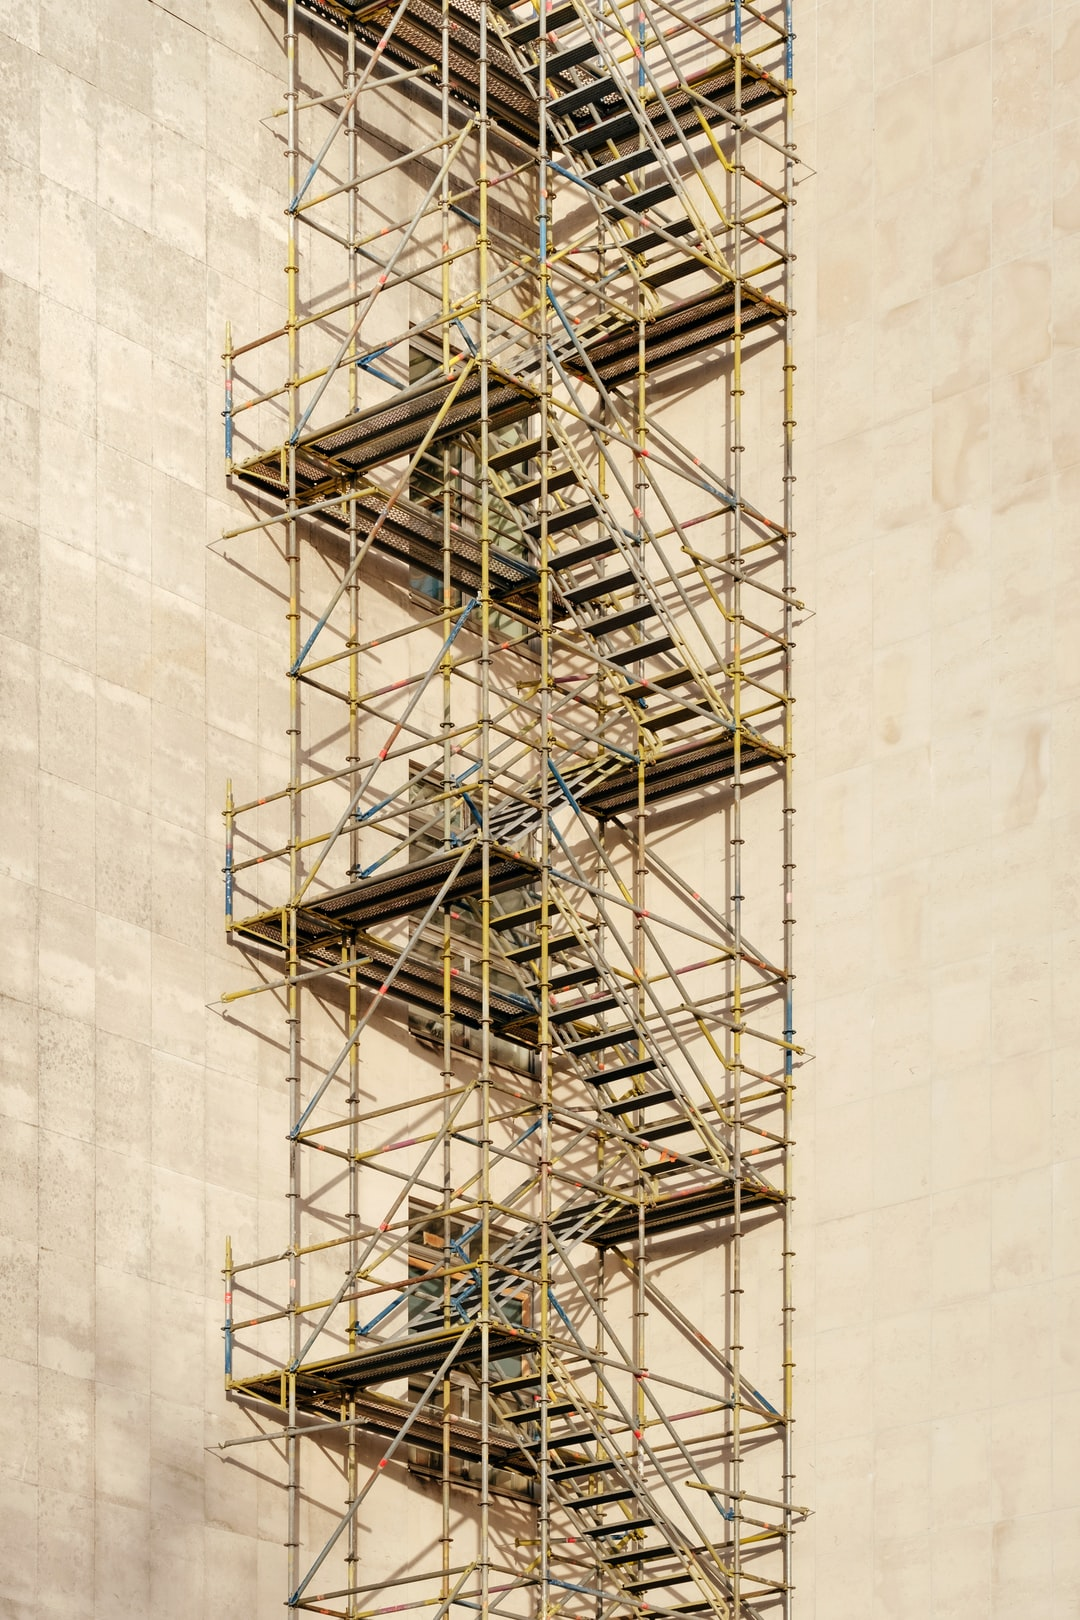 Scaffold Pictures Hq Download Free Images On Unsplash